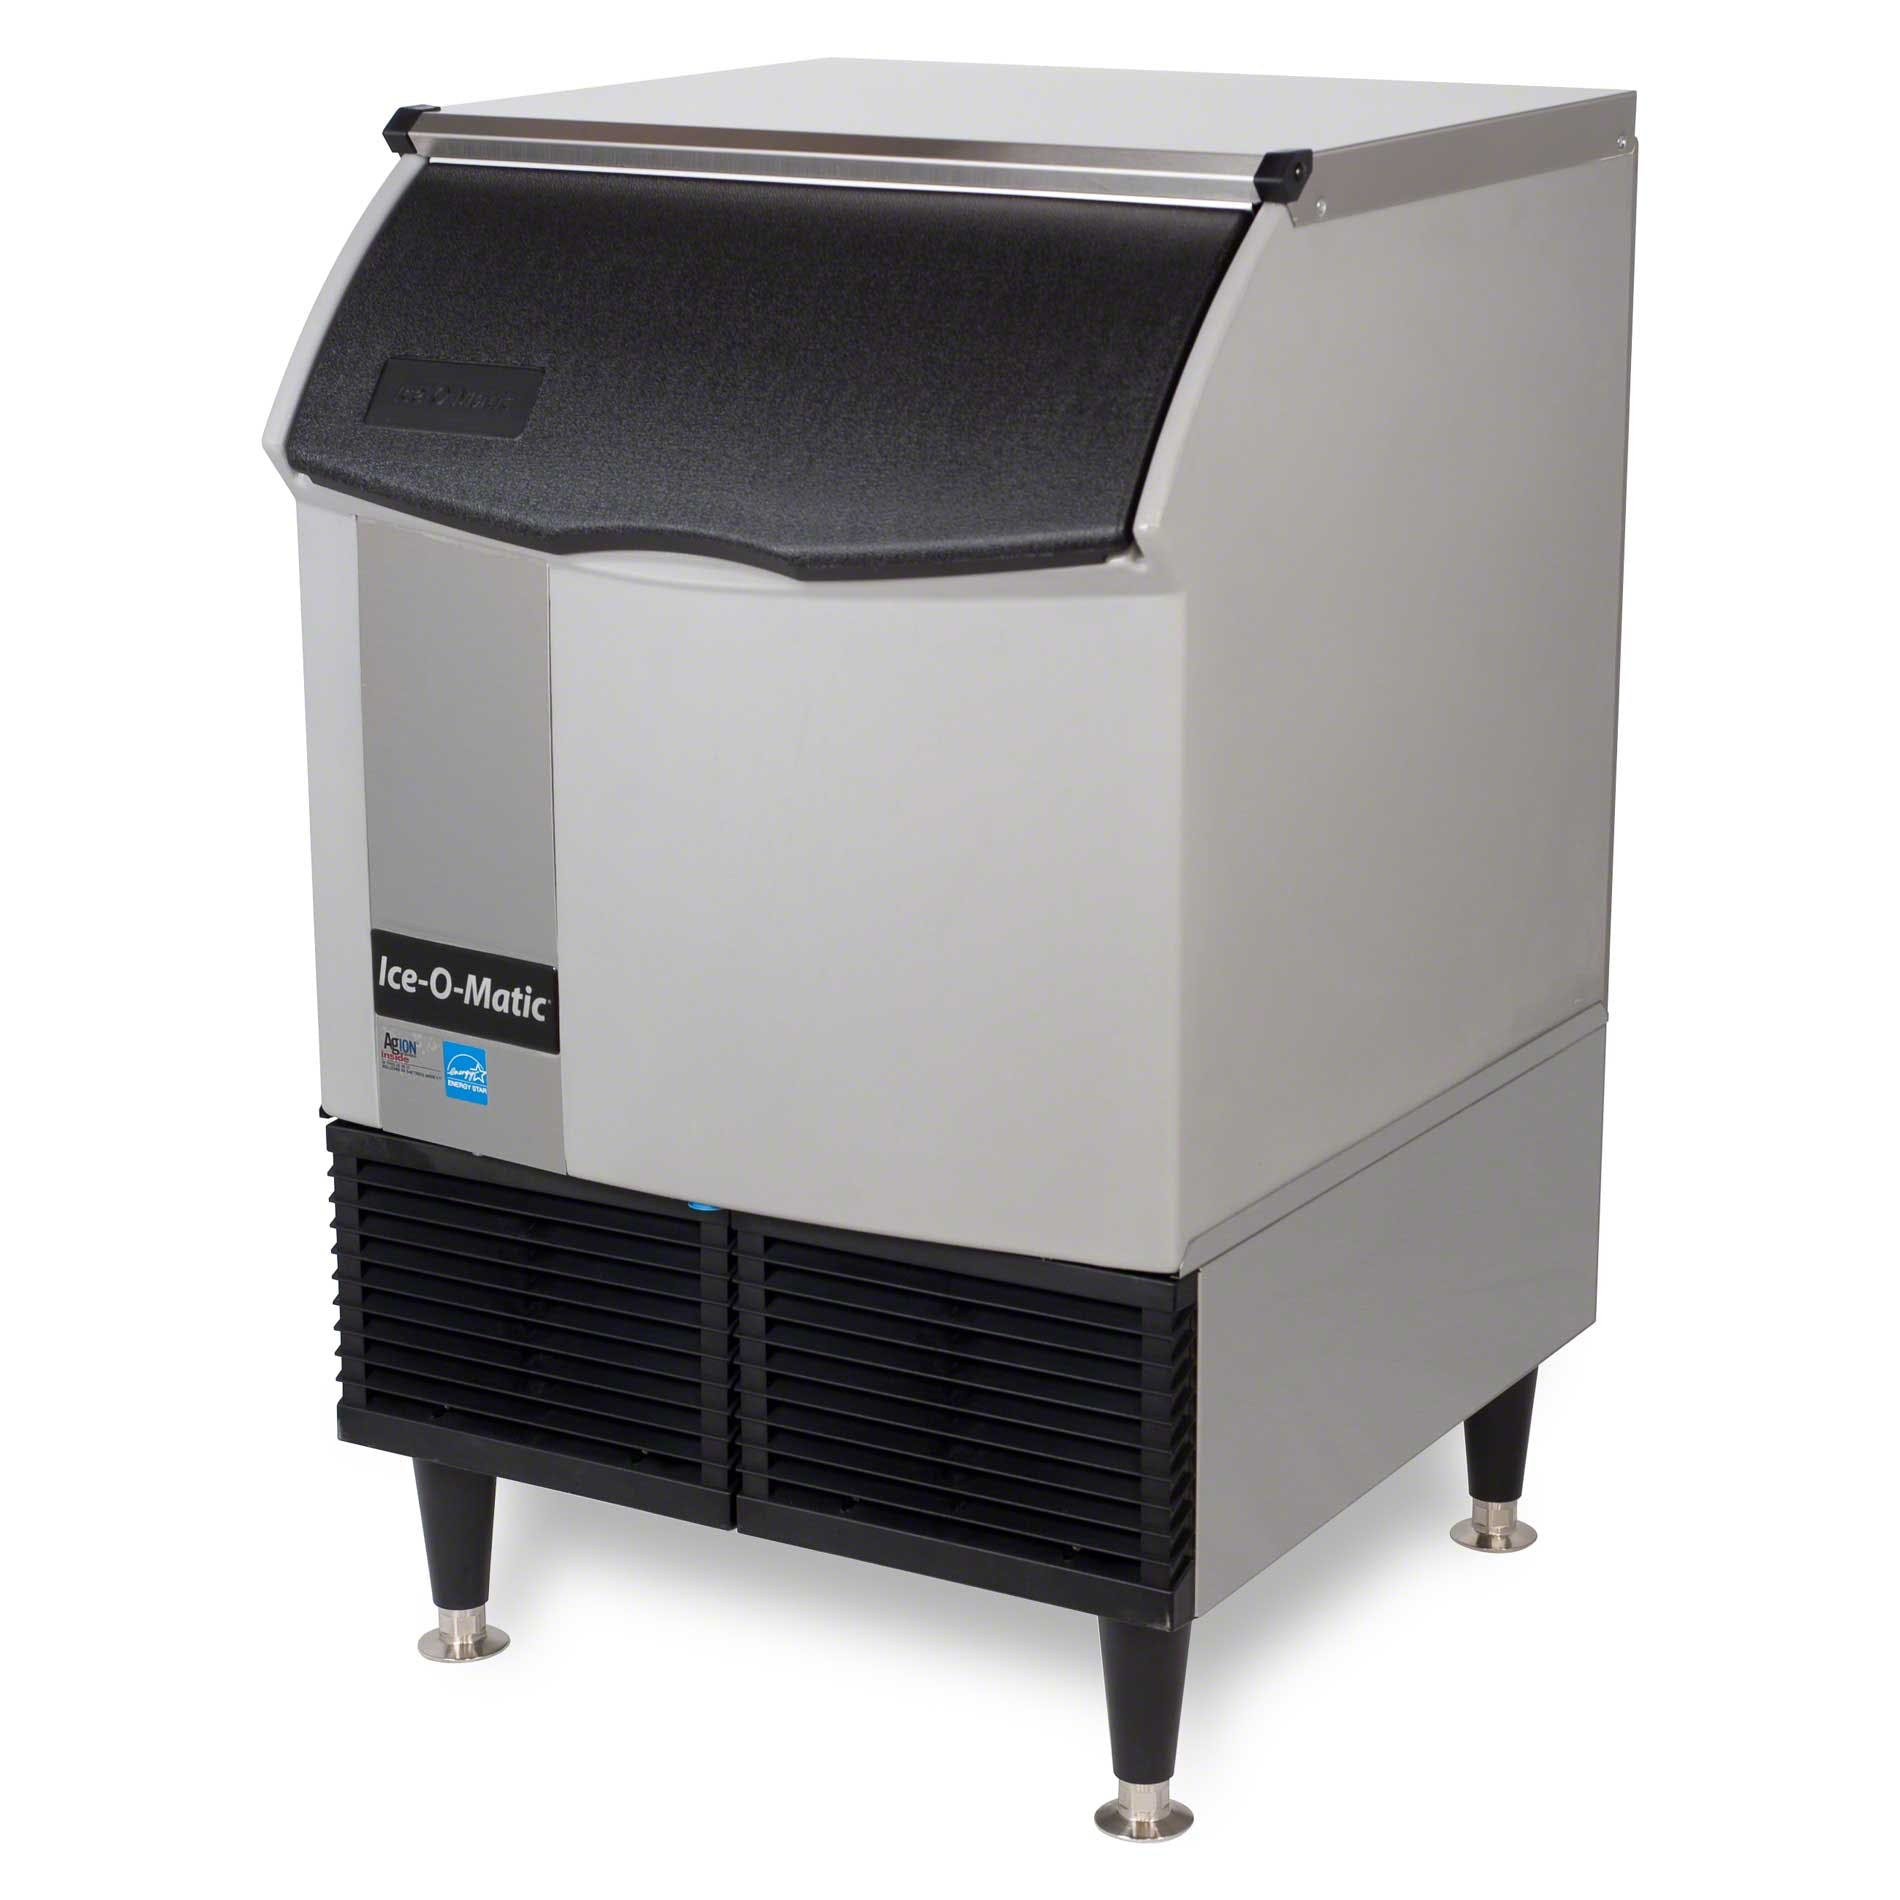 Ice-O-Matic - ICEU226HW 232 lb Self-Contained Half Cube Ice Machine - sold by Food Service Warehouse